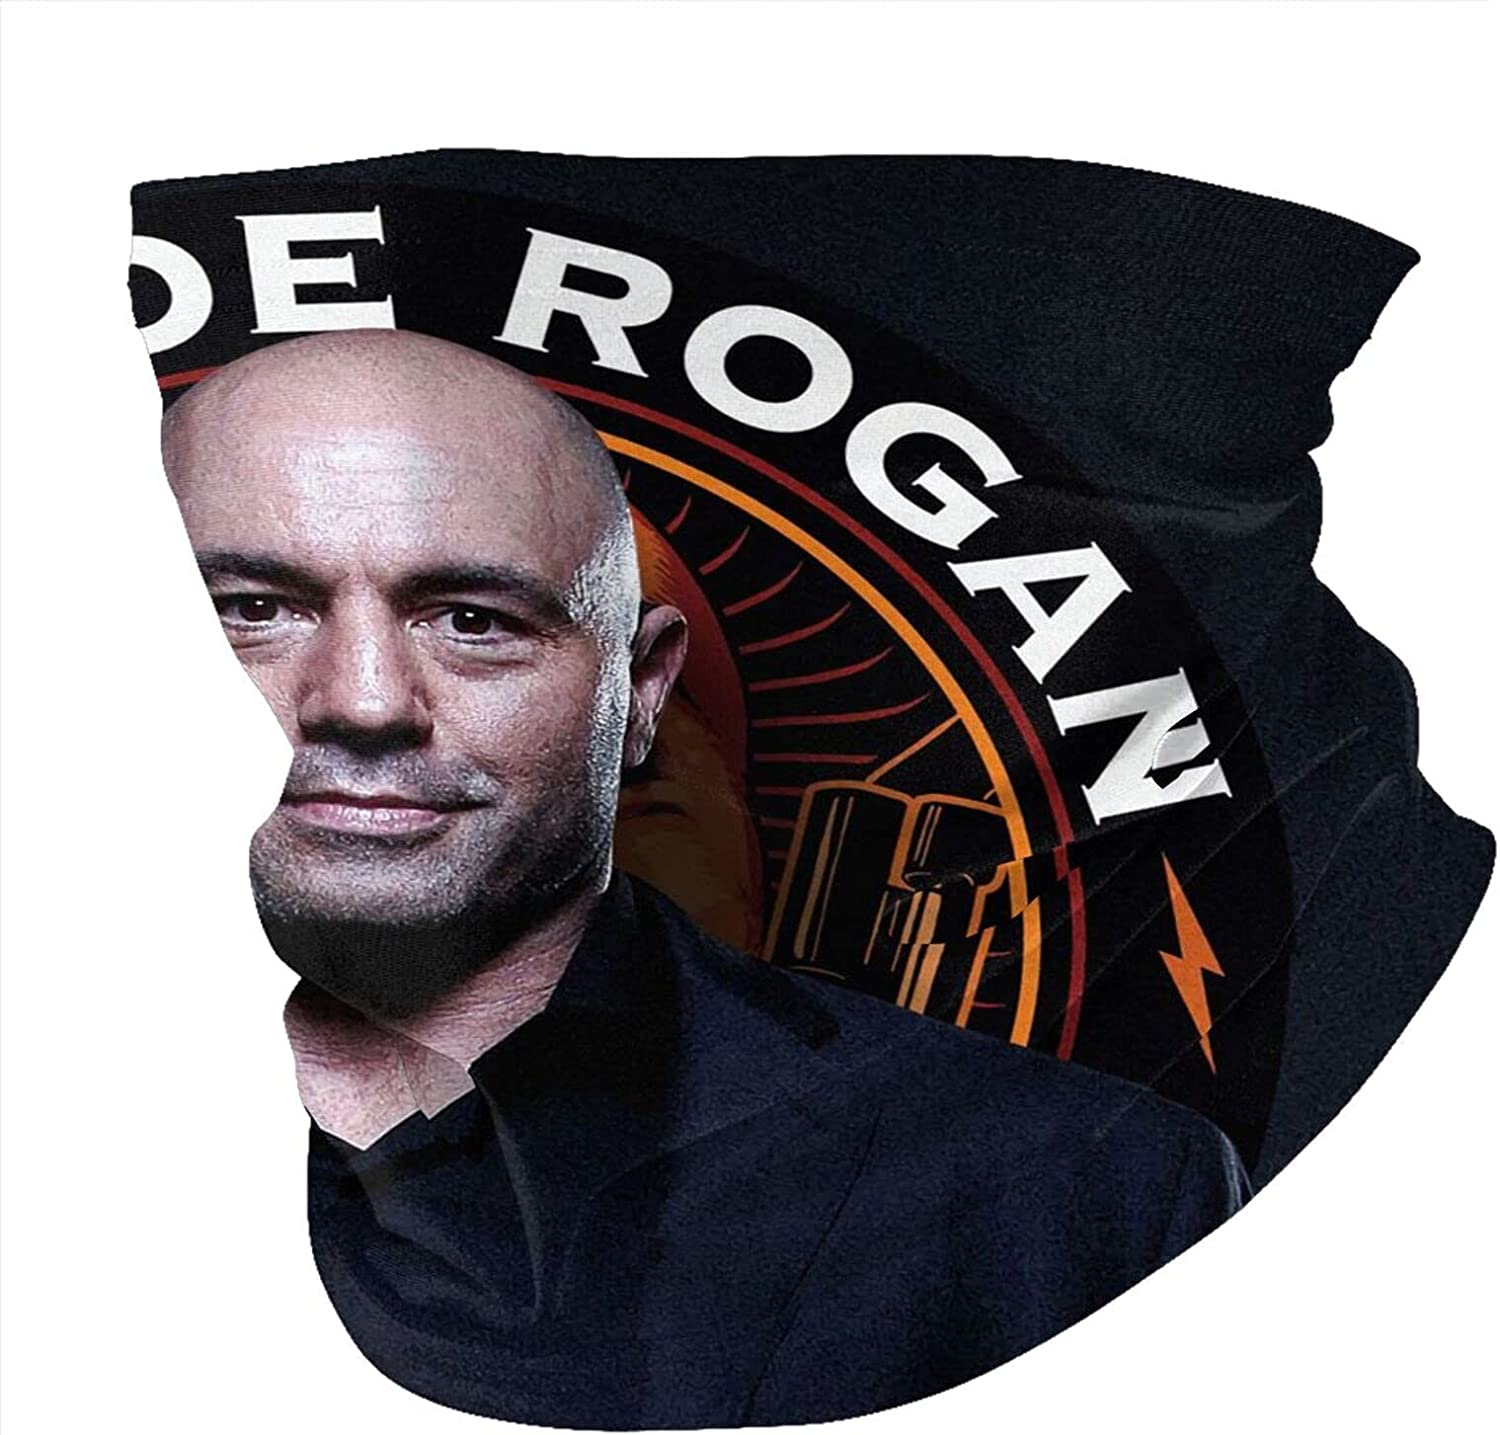 The Joe Rogan Experience Unisex Neck Gaiter Face Mask Men Women'S Multifunction Balaclava Face Cover,Cycling Mask,Sport Neck Gaiter,Hiking Scarf,Fishing Mask, Motorcycle Face Cover